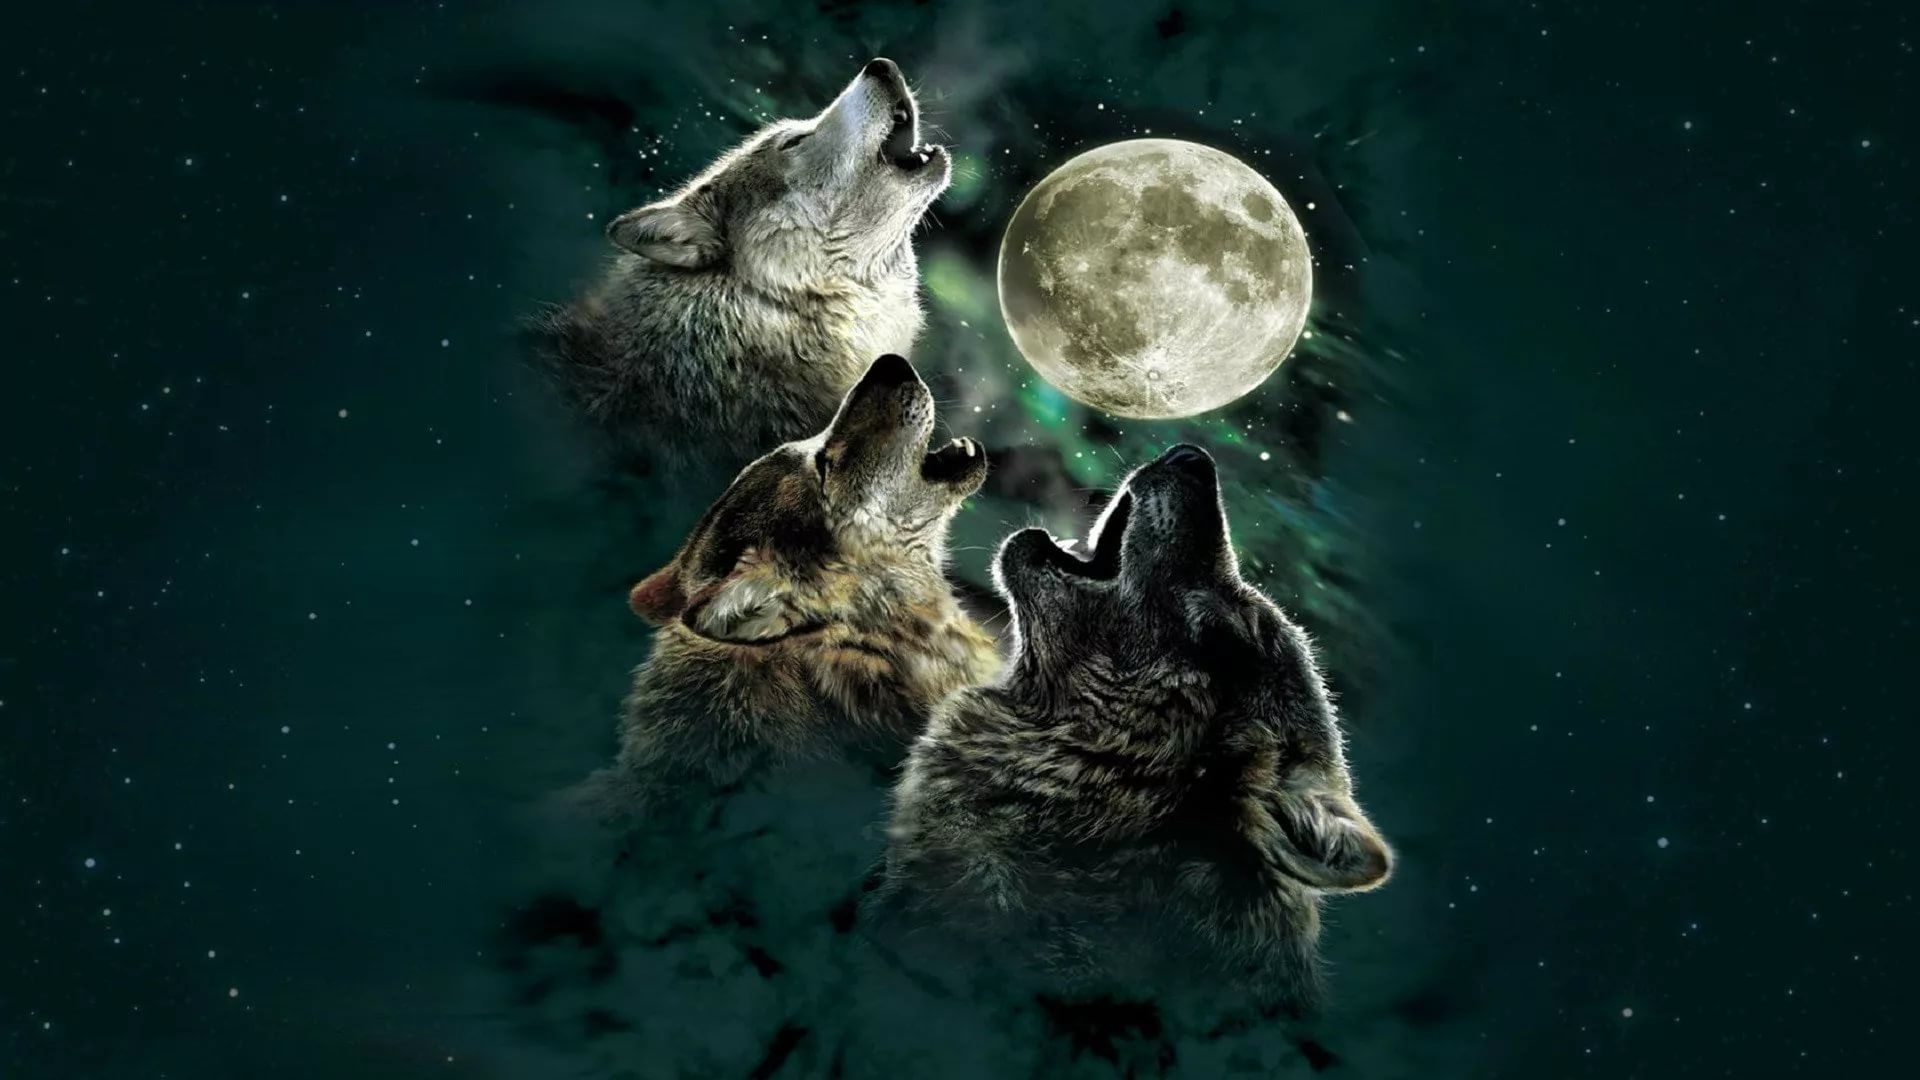 Cool Wolf hd wallpaper for laptop